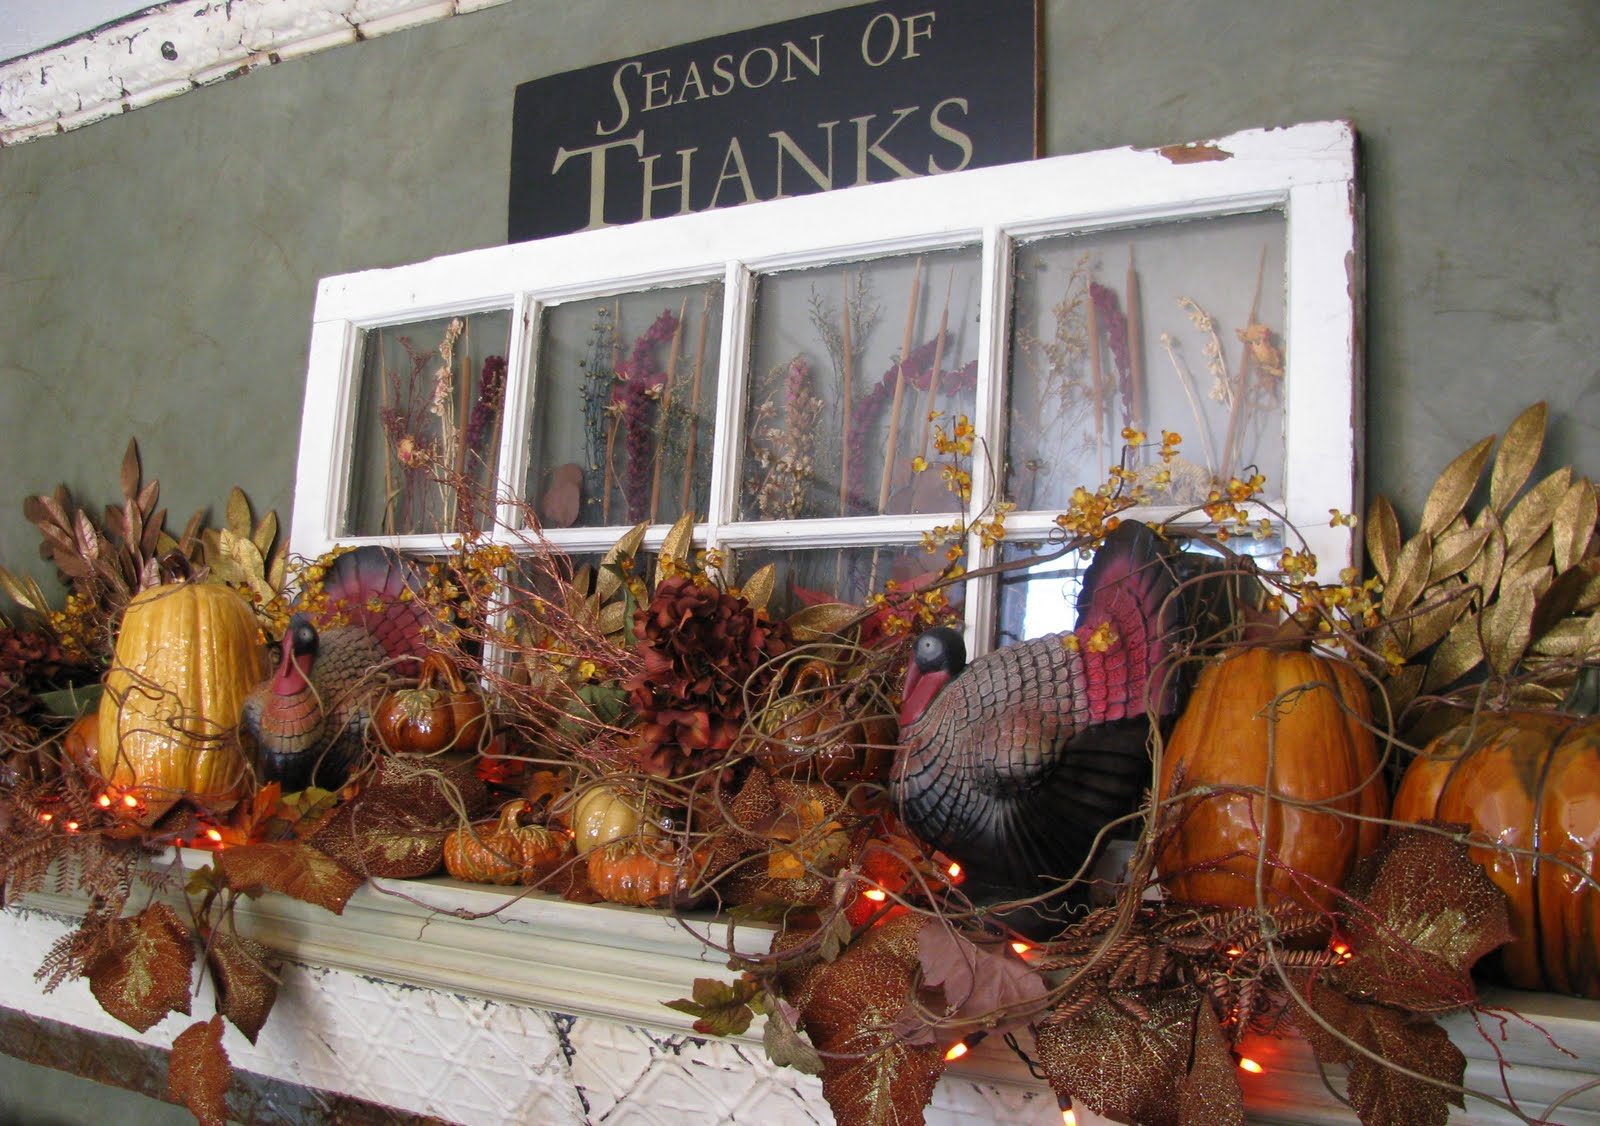 Thanksgiving decorating ideas kathy kiefer for Pictures of fall decorations for outdoors